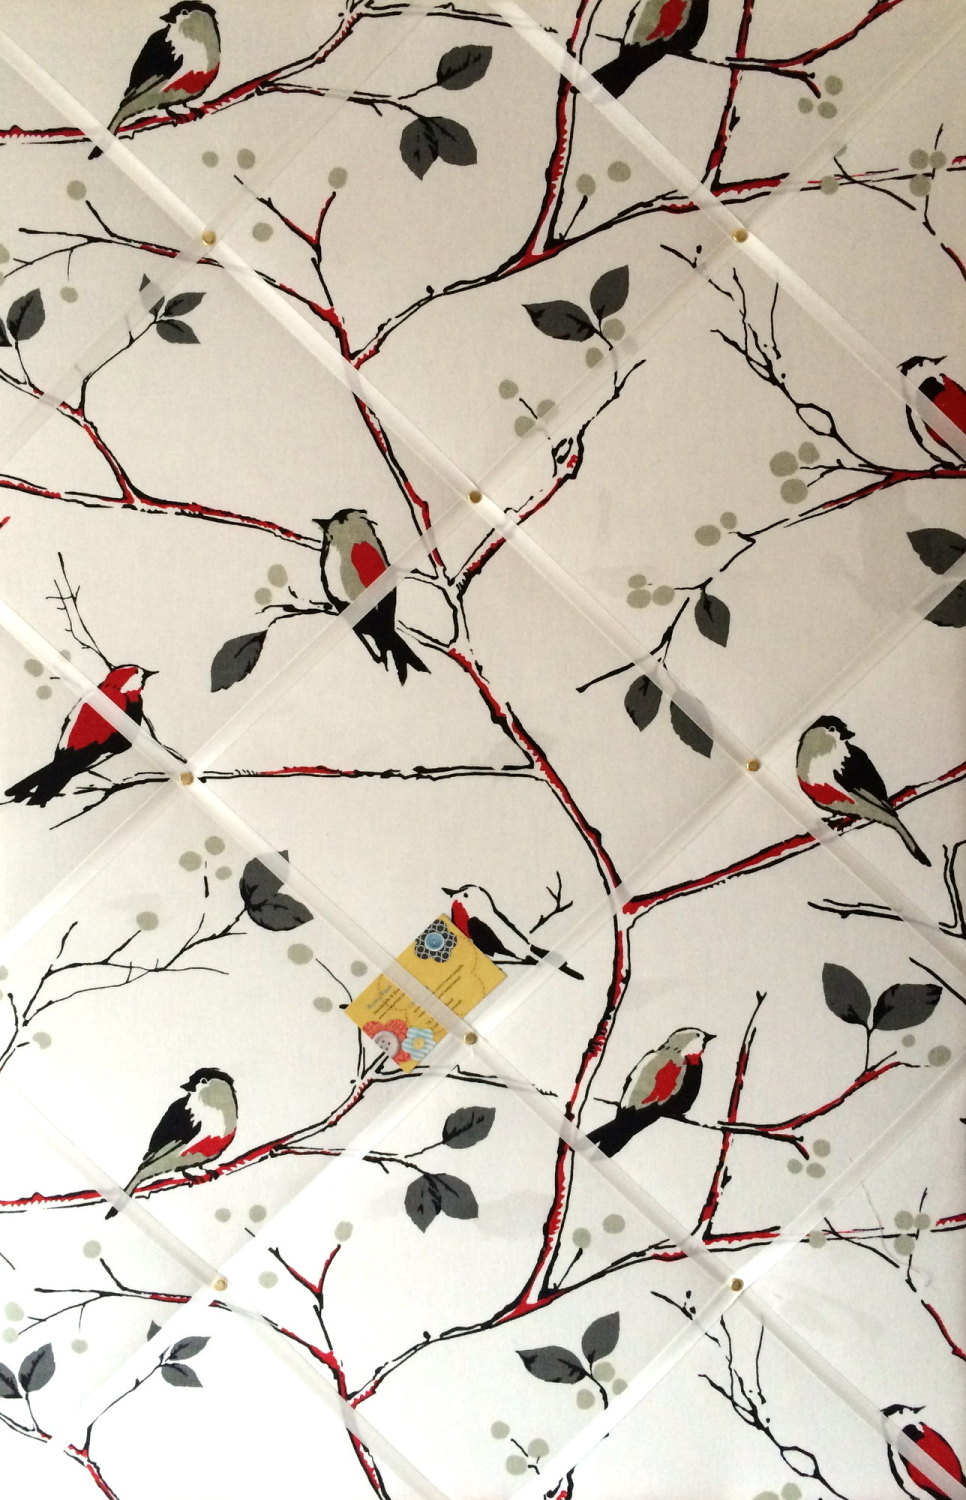 Extra Large 90x60cm Prestigious Berkeley Square Bird Vertical Hand Crafted